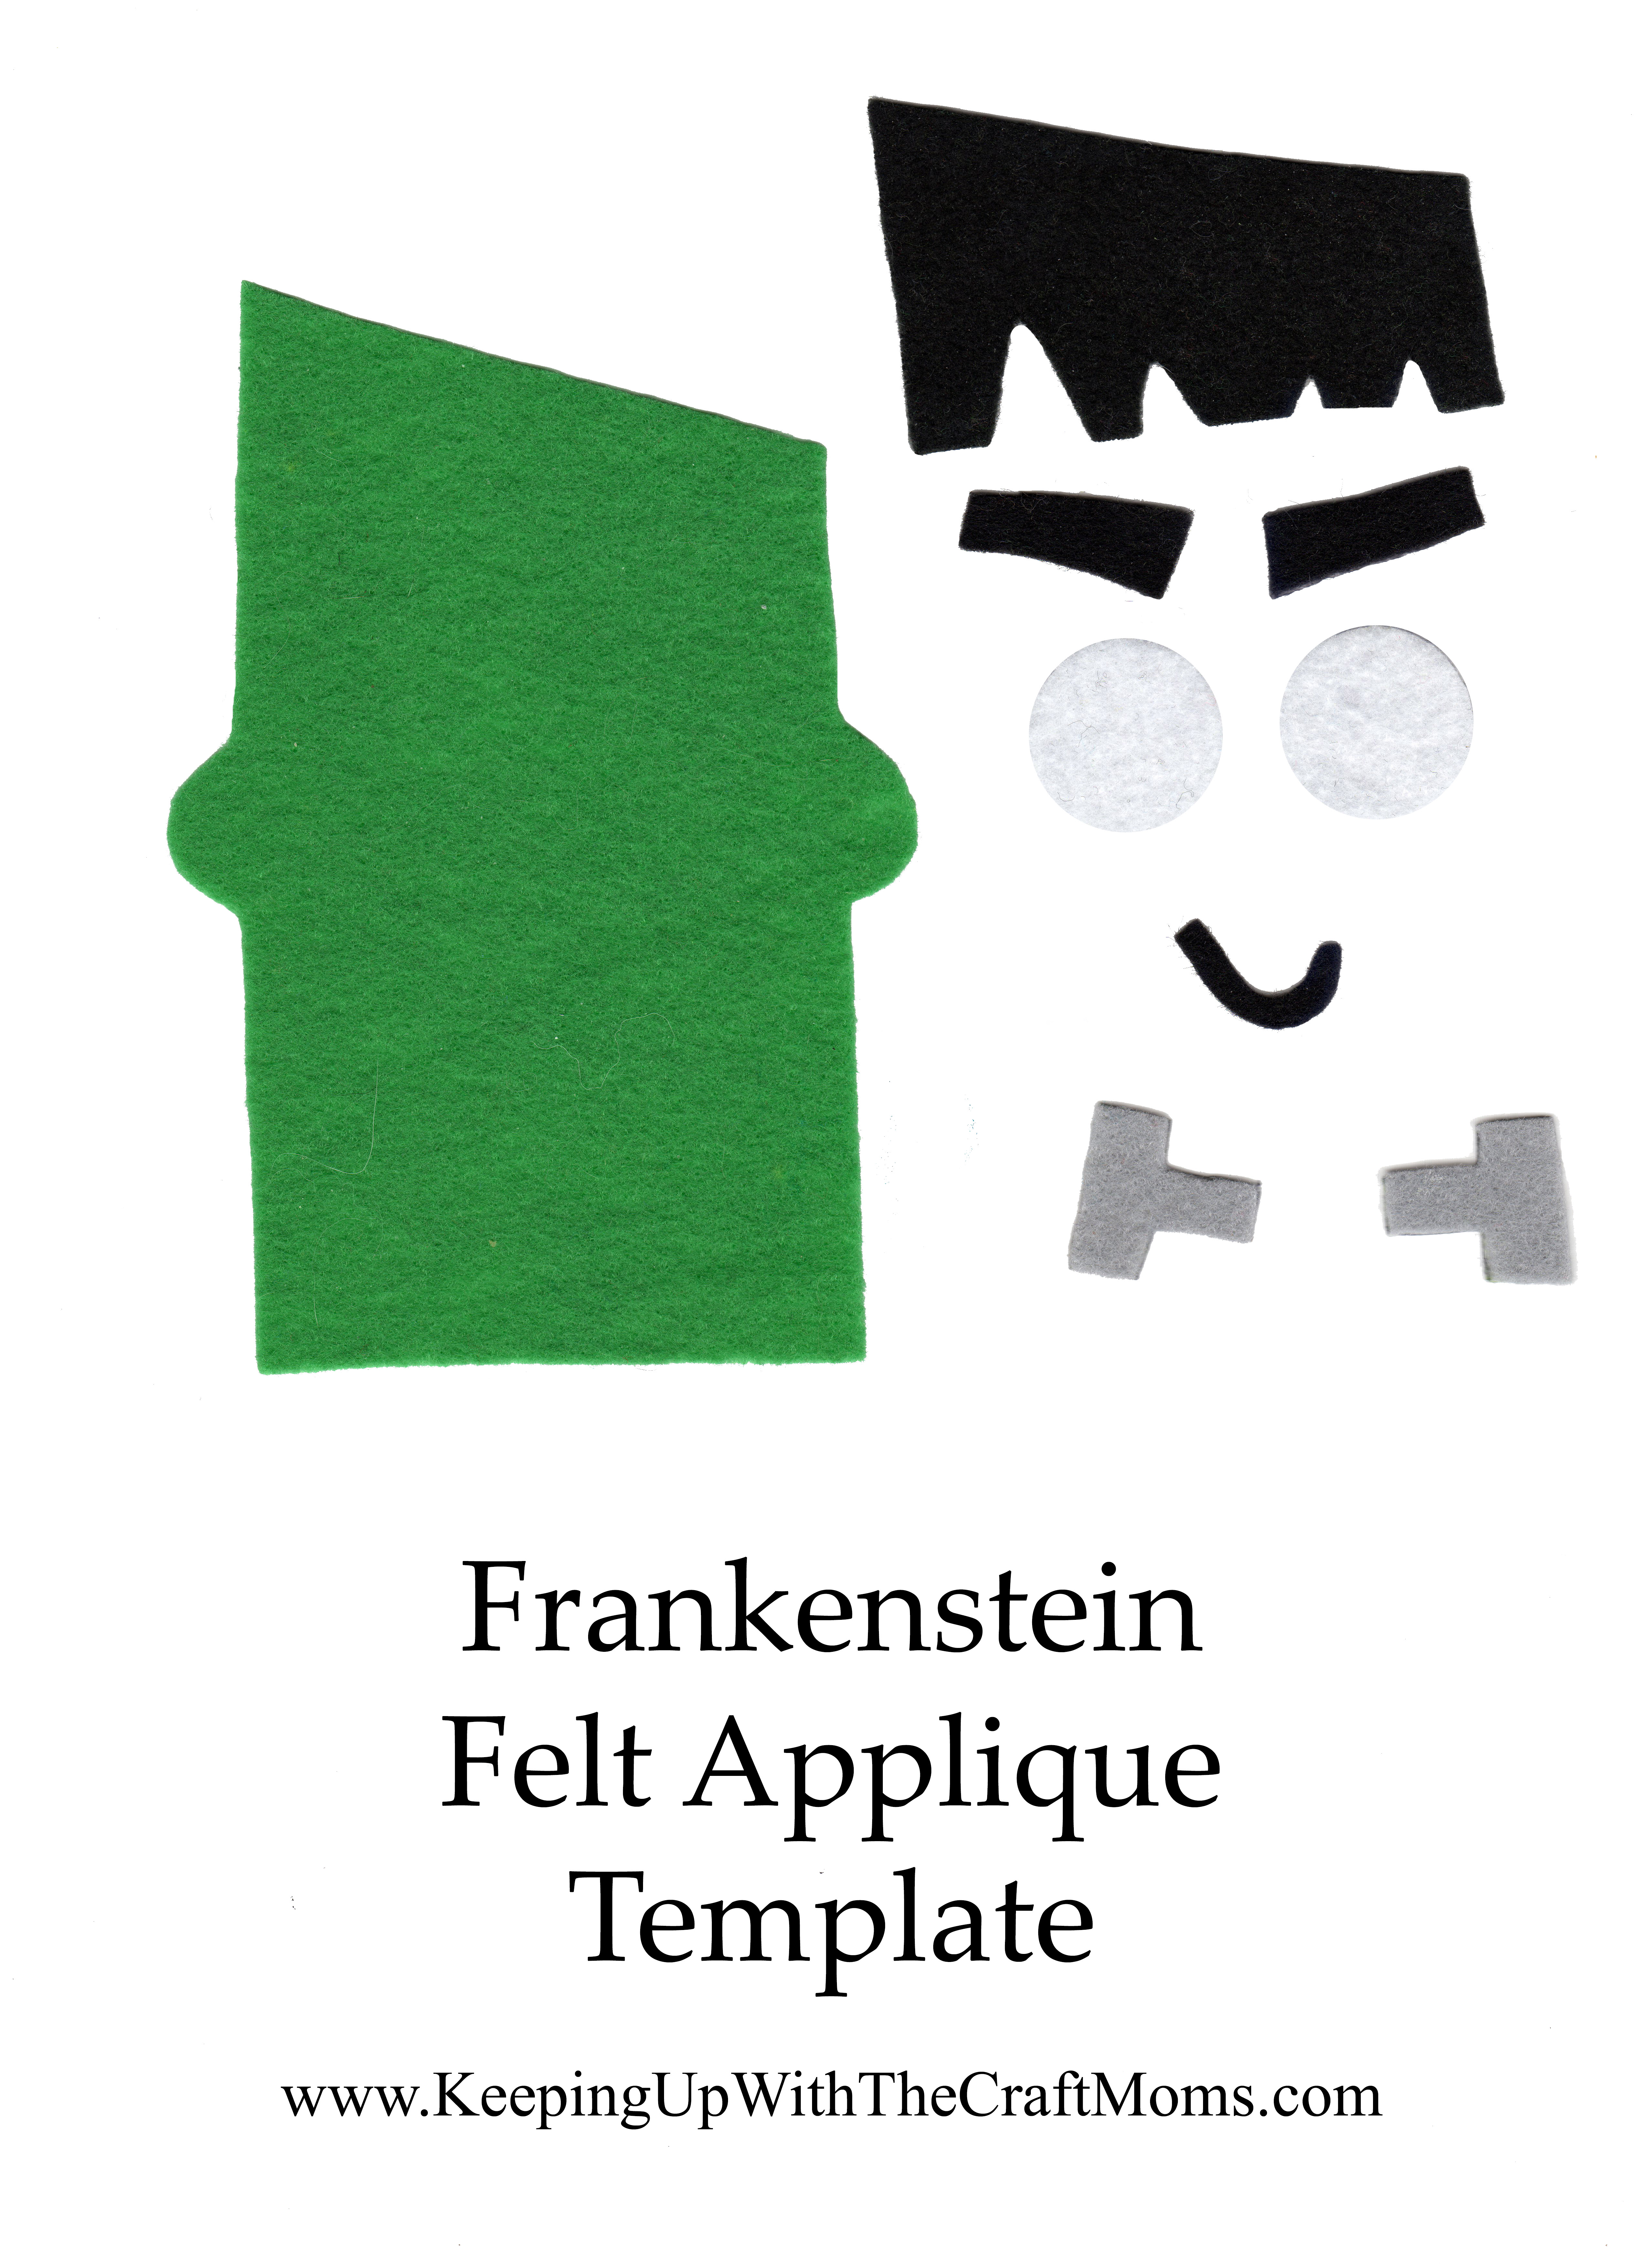 frankenstein applique keepingupwiththecraftmoms